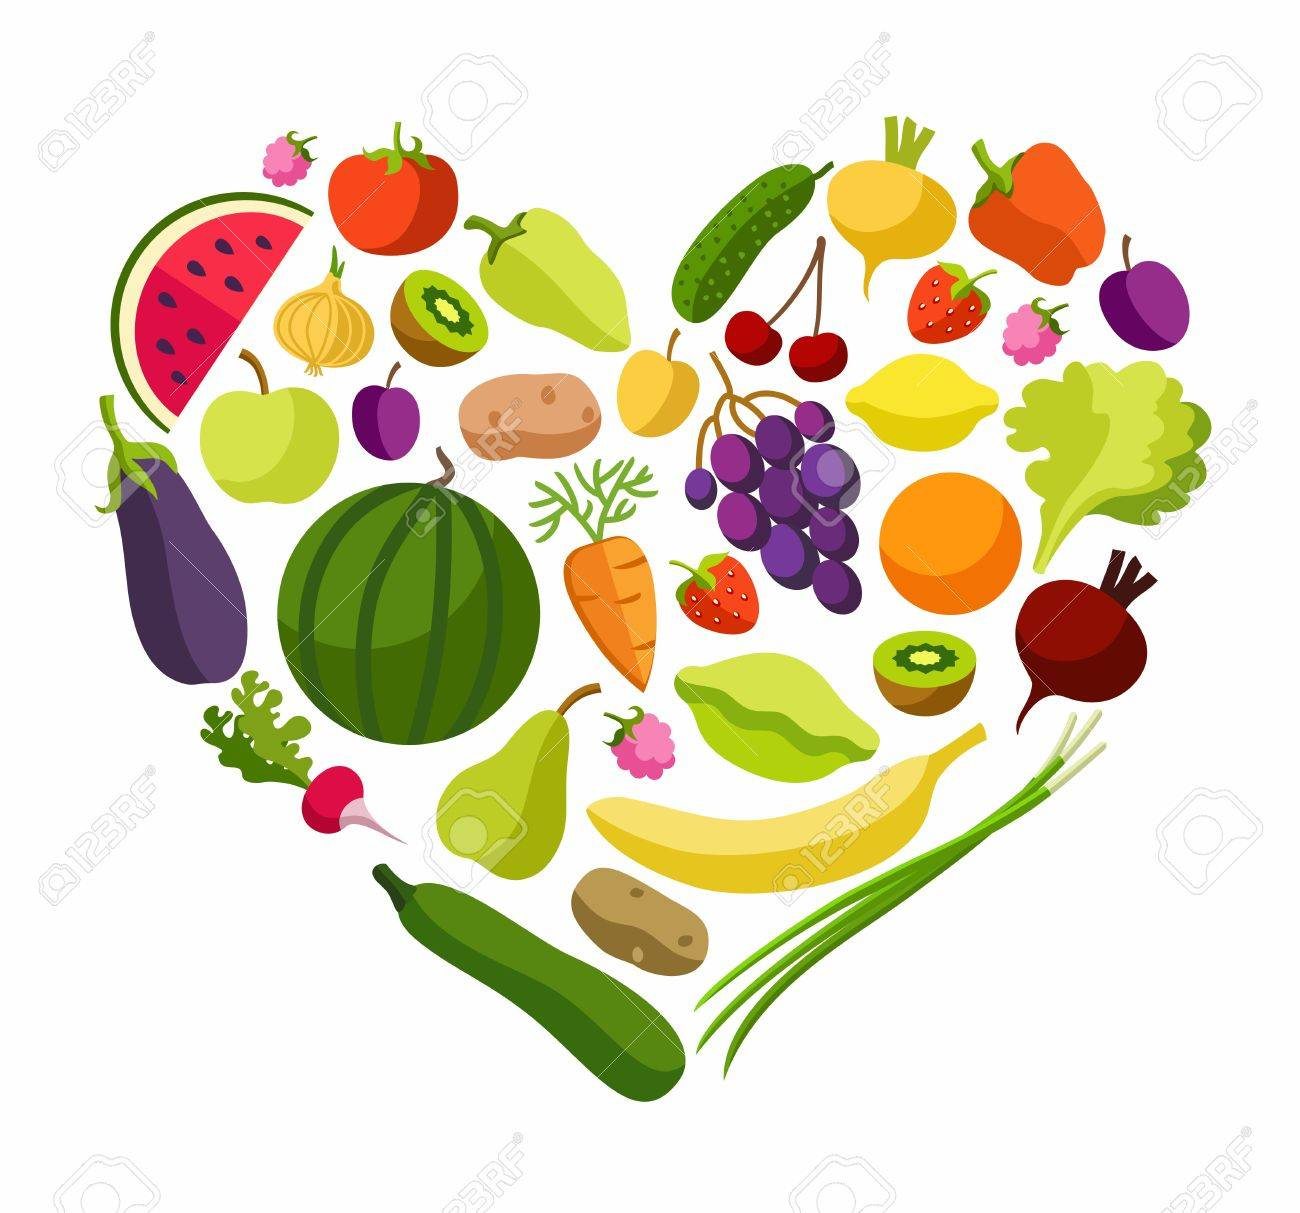 Fruits Vegetables Heart Coloured Illustrations Fruits And